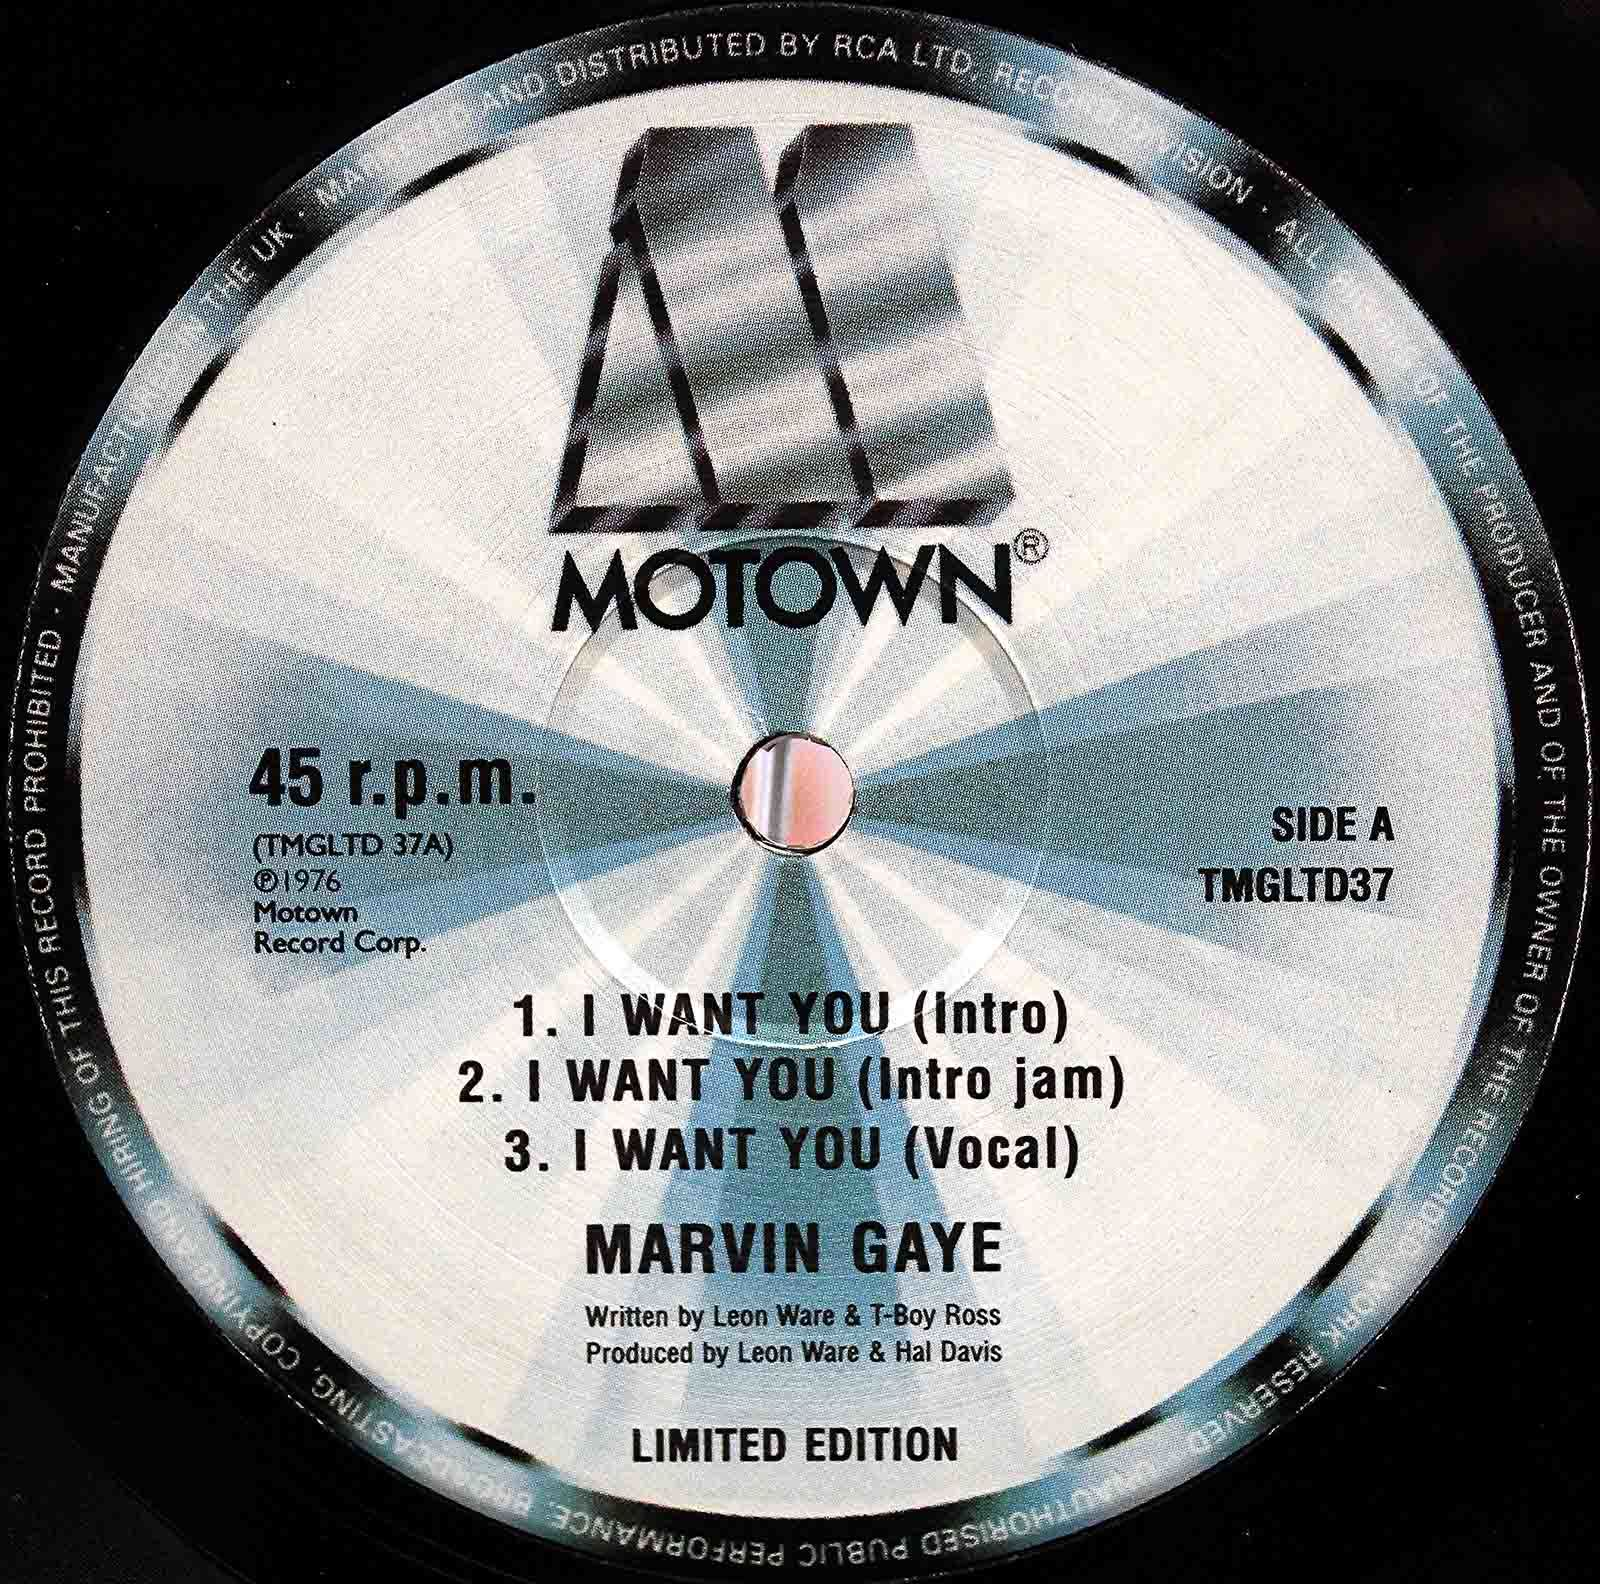 Marvin Gaye - I want you 12inch 03